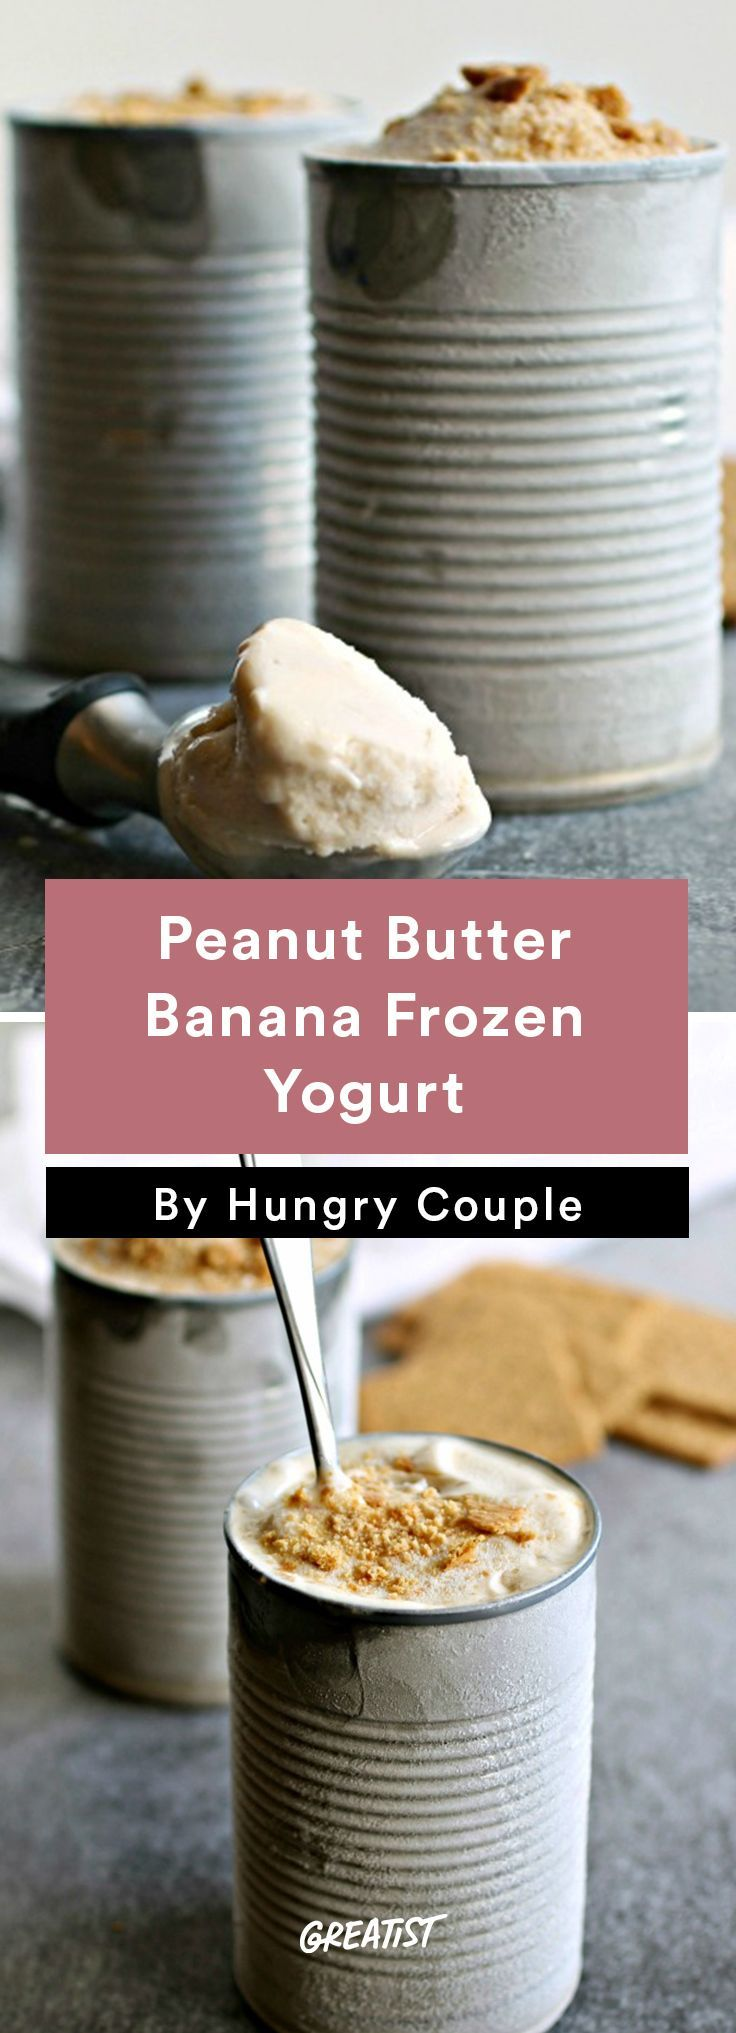 2. Peanut Butter Banana Frozen Yogurt http://greatist.com/eat/frozen-yogurt-recipes-with-5-ingredients-or-less